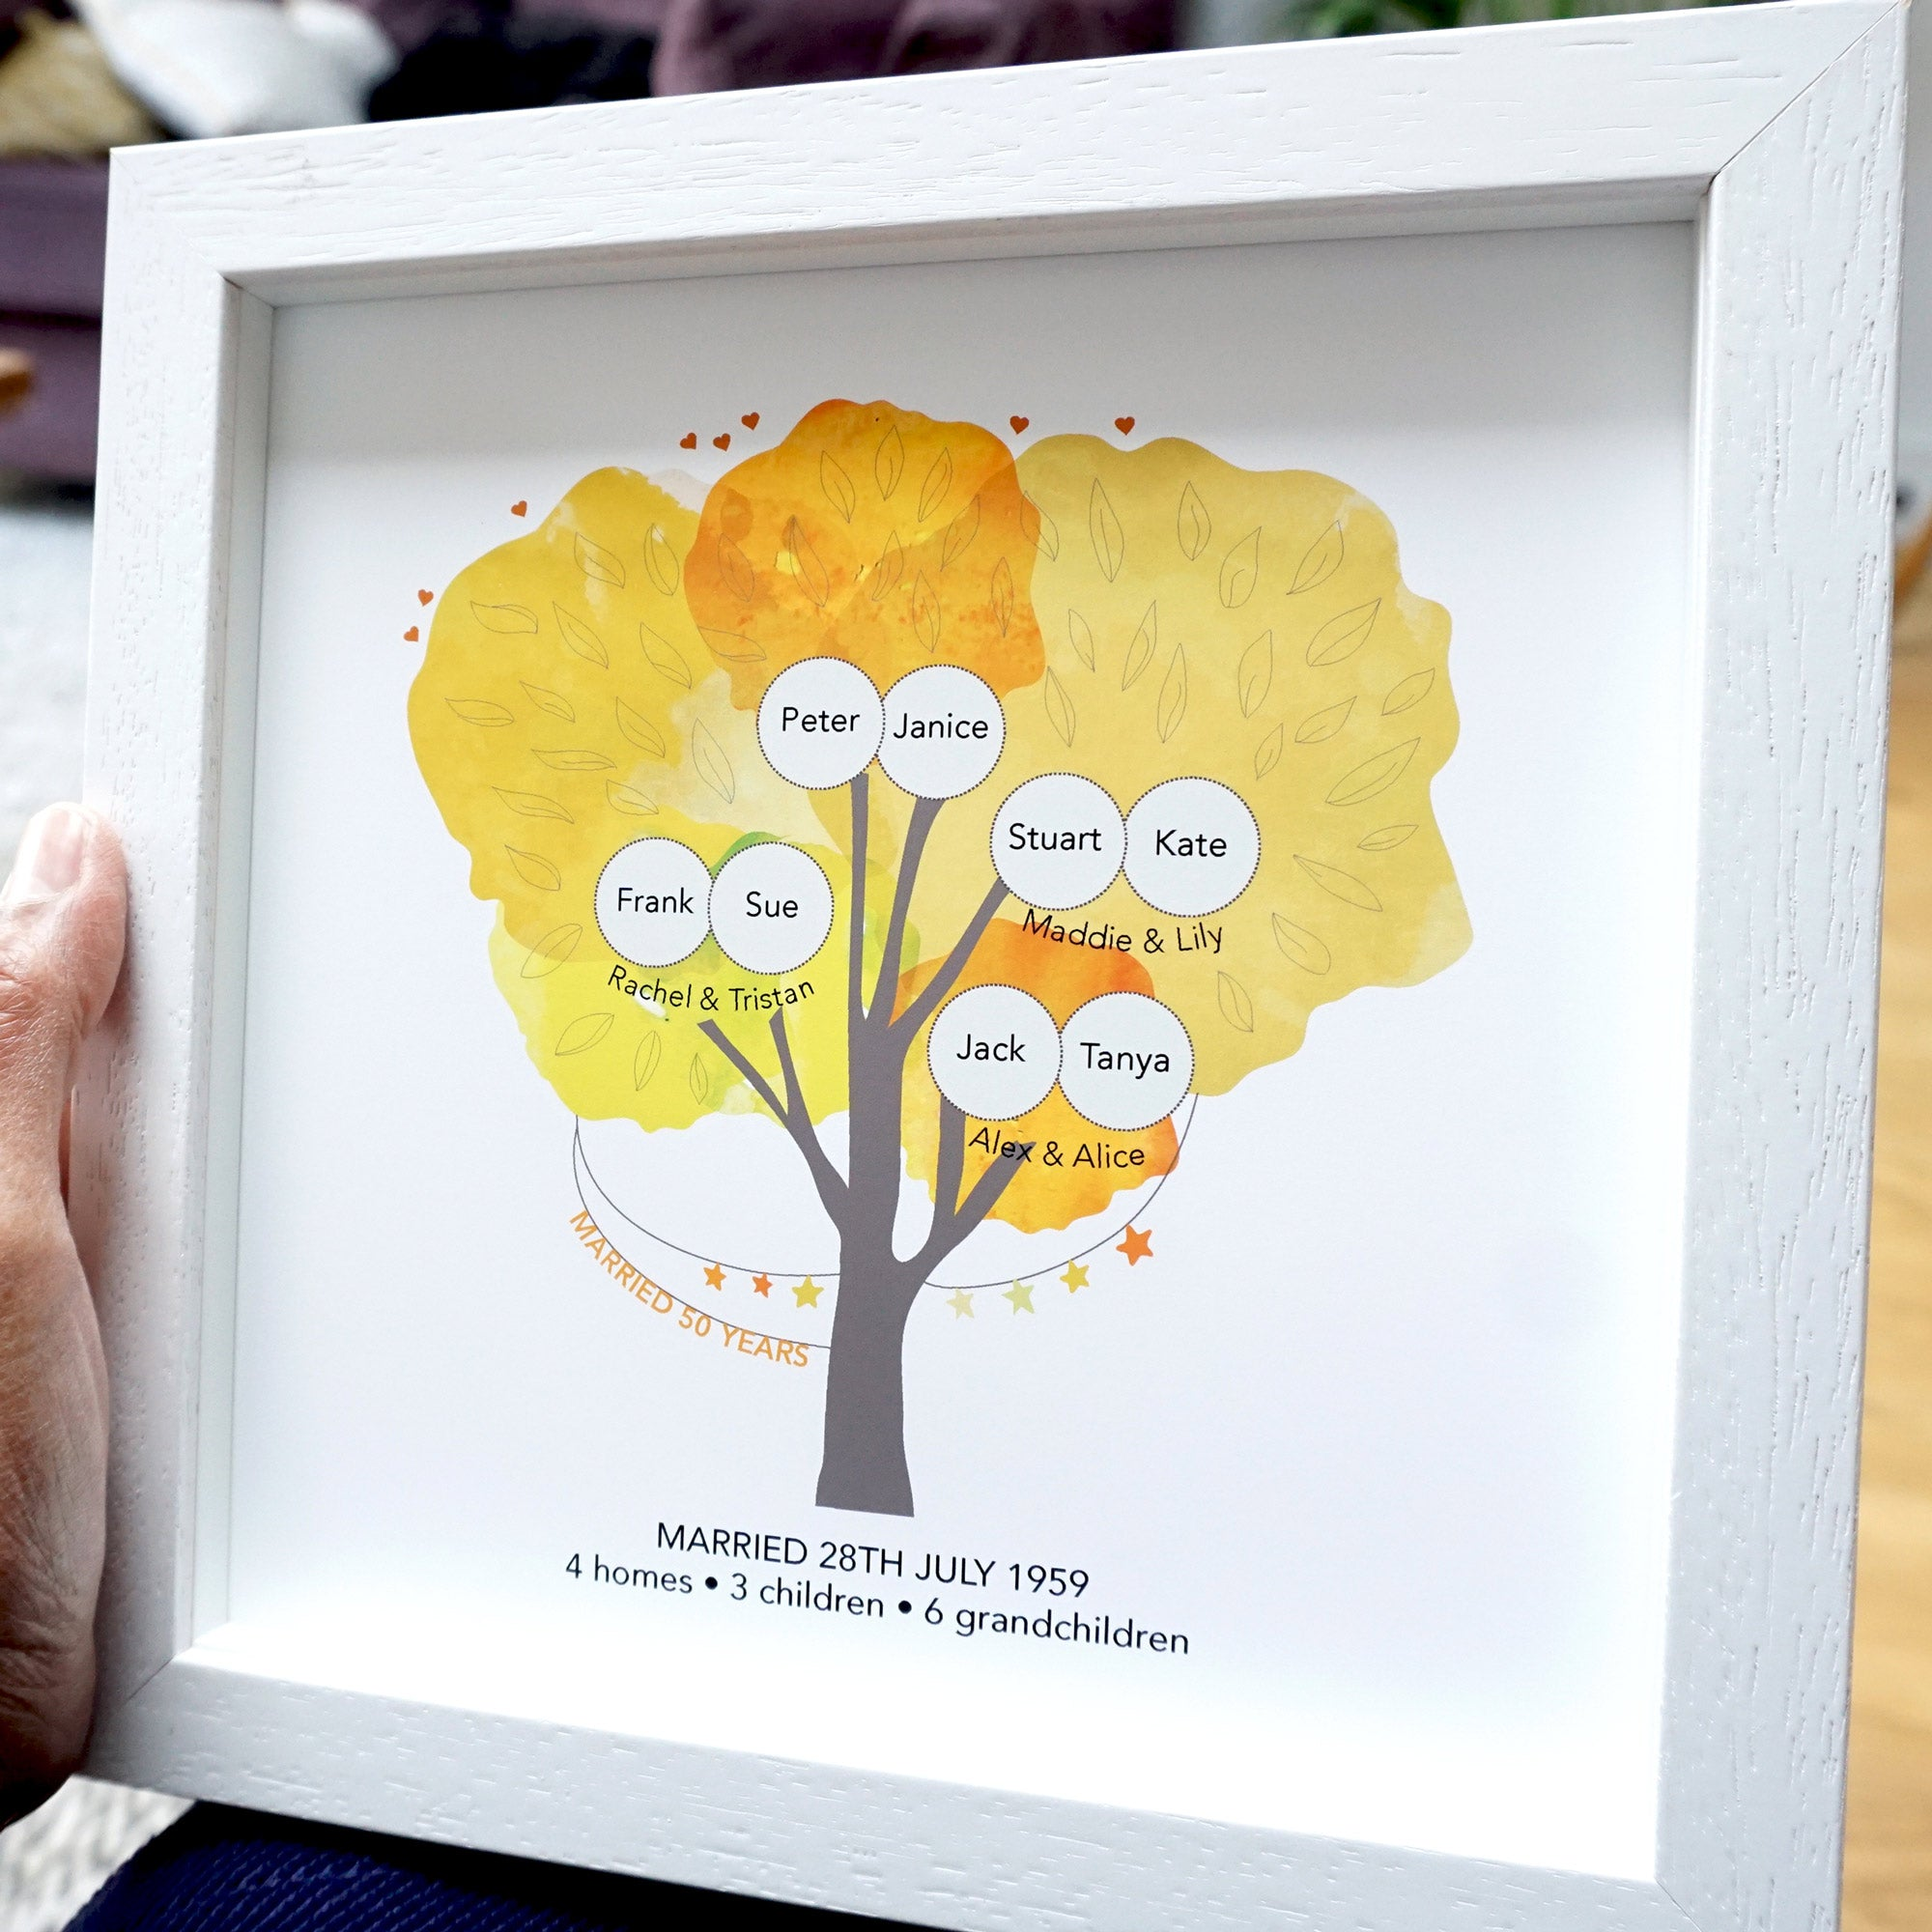 Personalised 50th Anniversary Family Tree - Ant Design Gifts